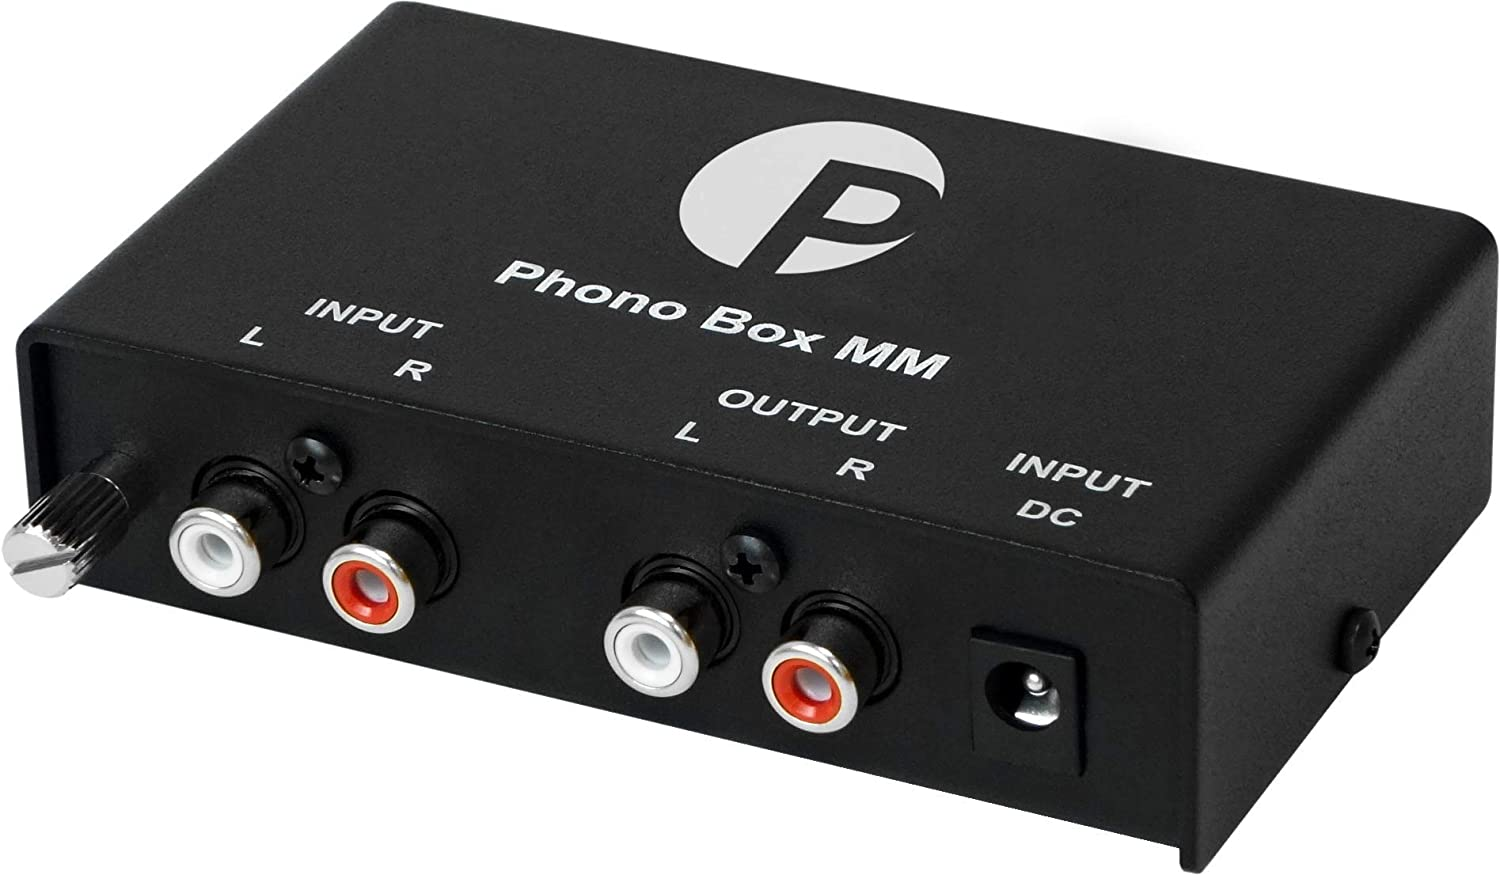 B000YEK1AQ Pro-Ject Phono Box MM DC Phonograph Preamplifier,Black 71vP1qf2dML.SL1500_